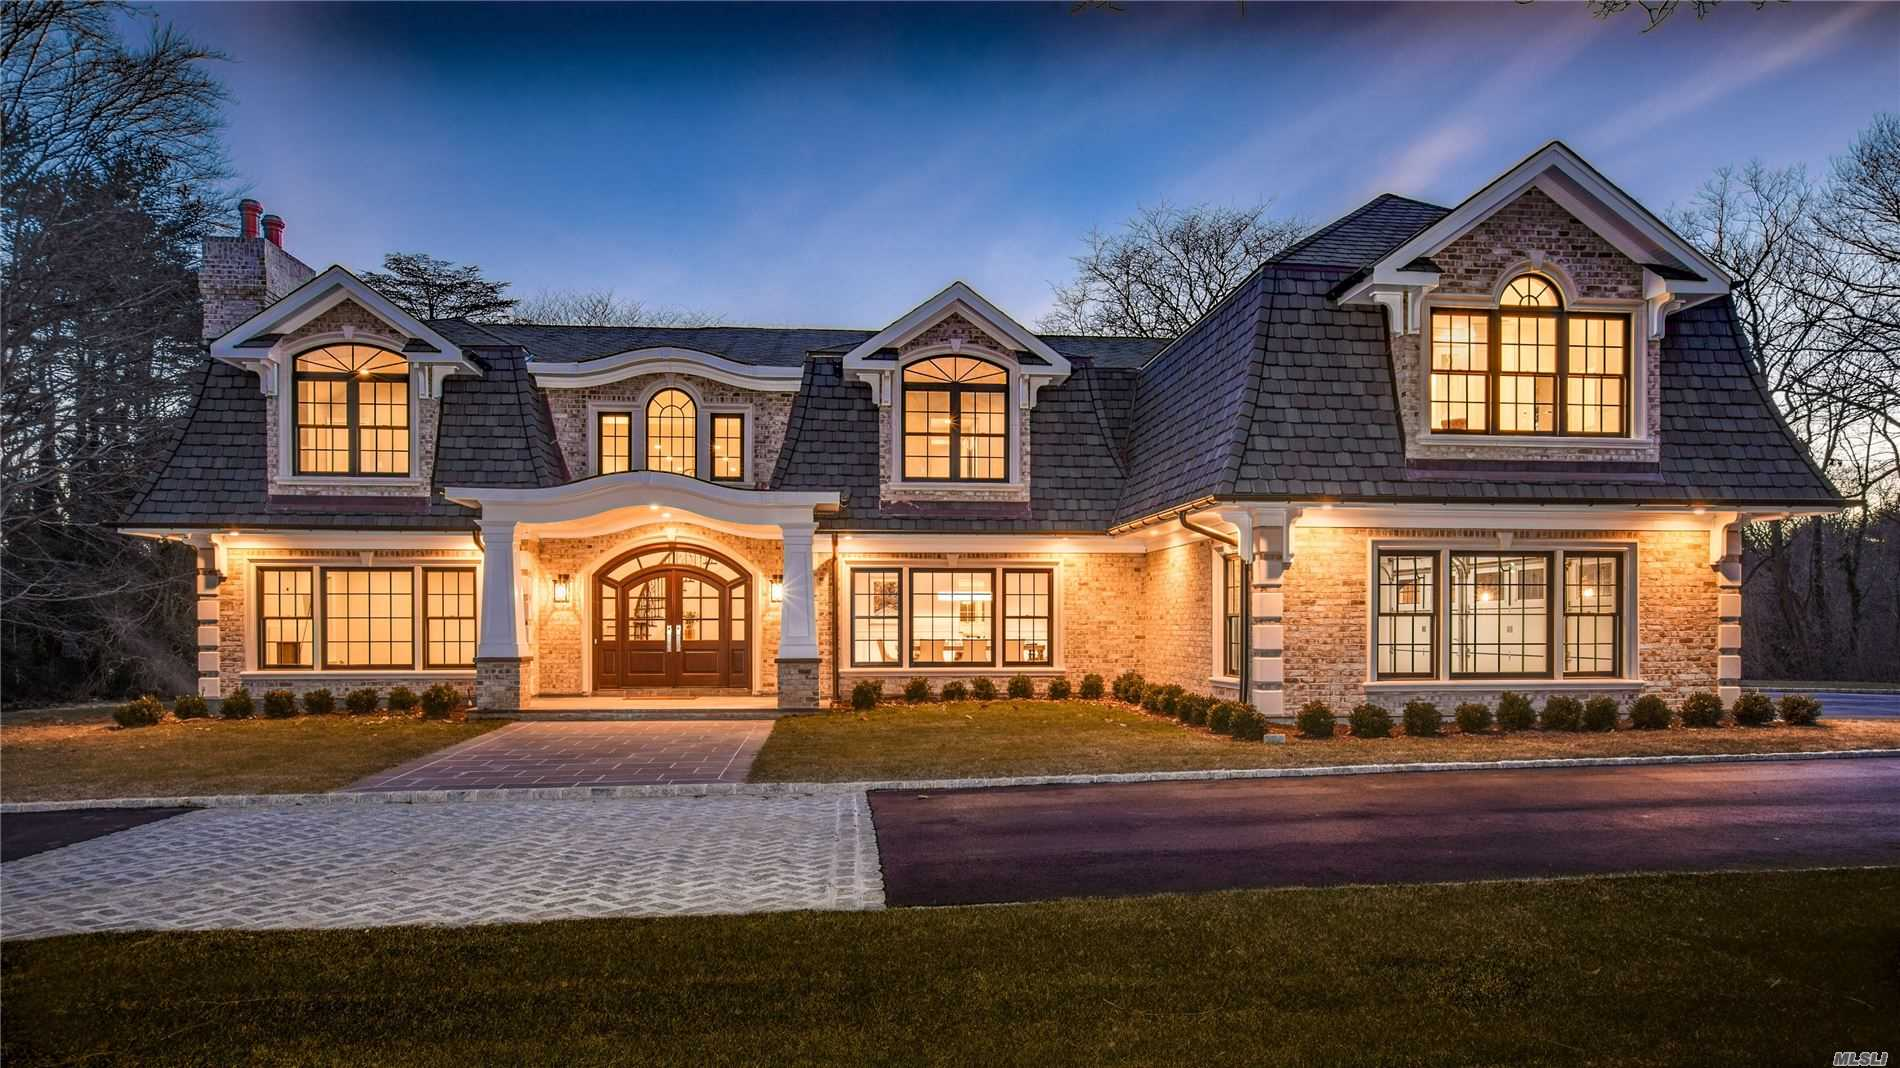 Photo of home for sale at 22 Applegreen Dr, Old Westbury NY